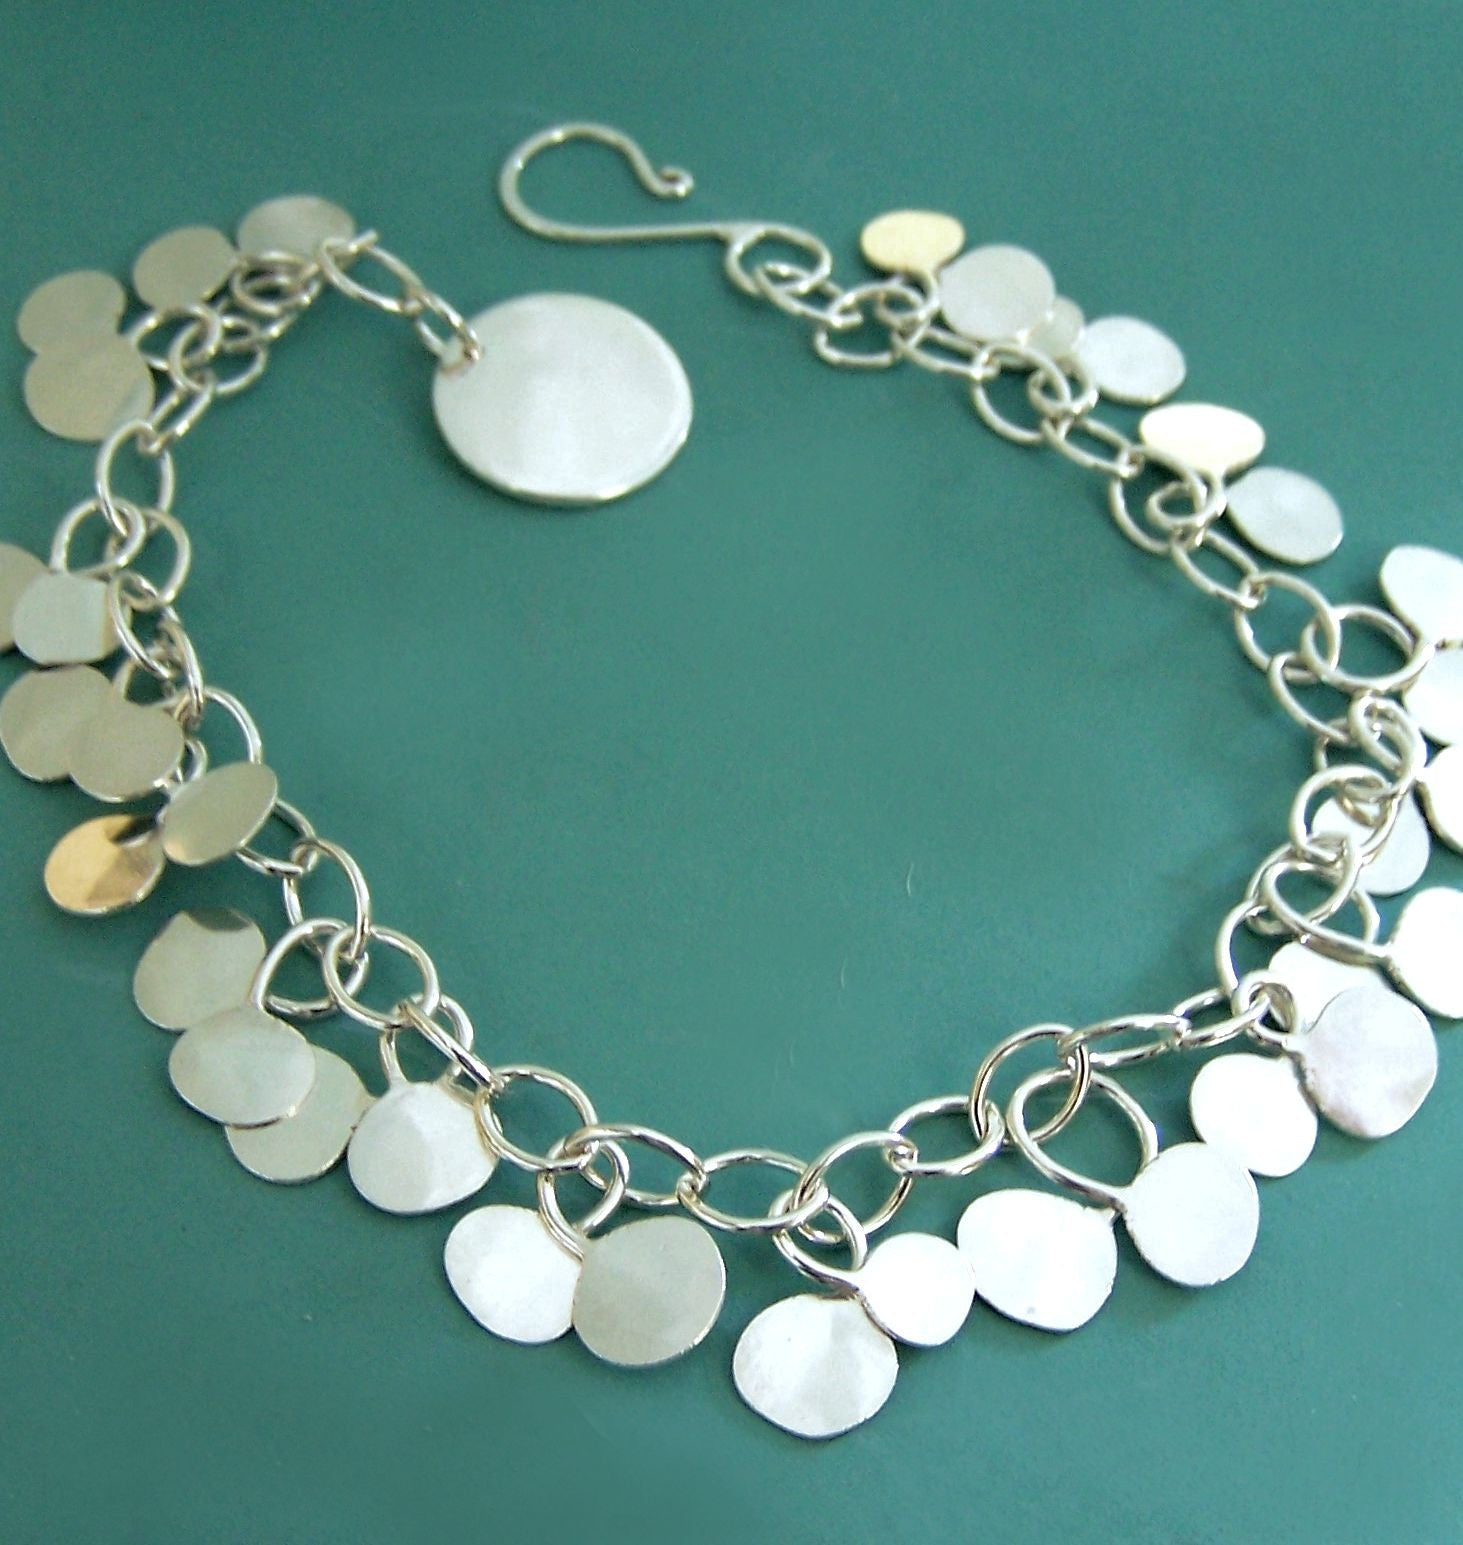 Chain Bracelet with Hammered Dots in Sterling Silver